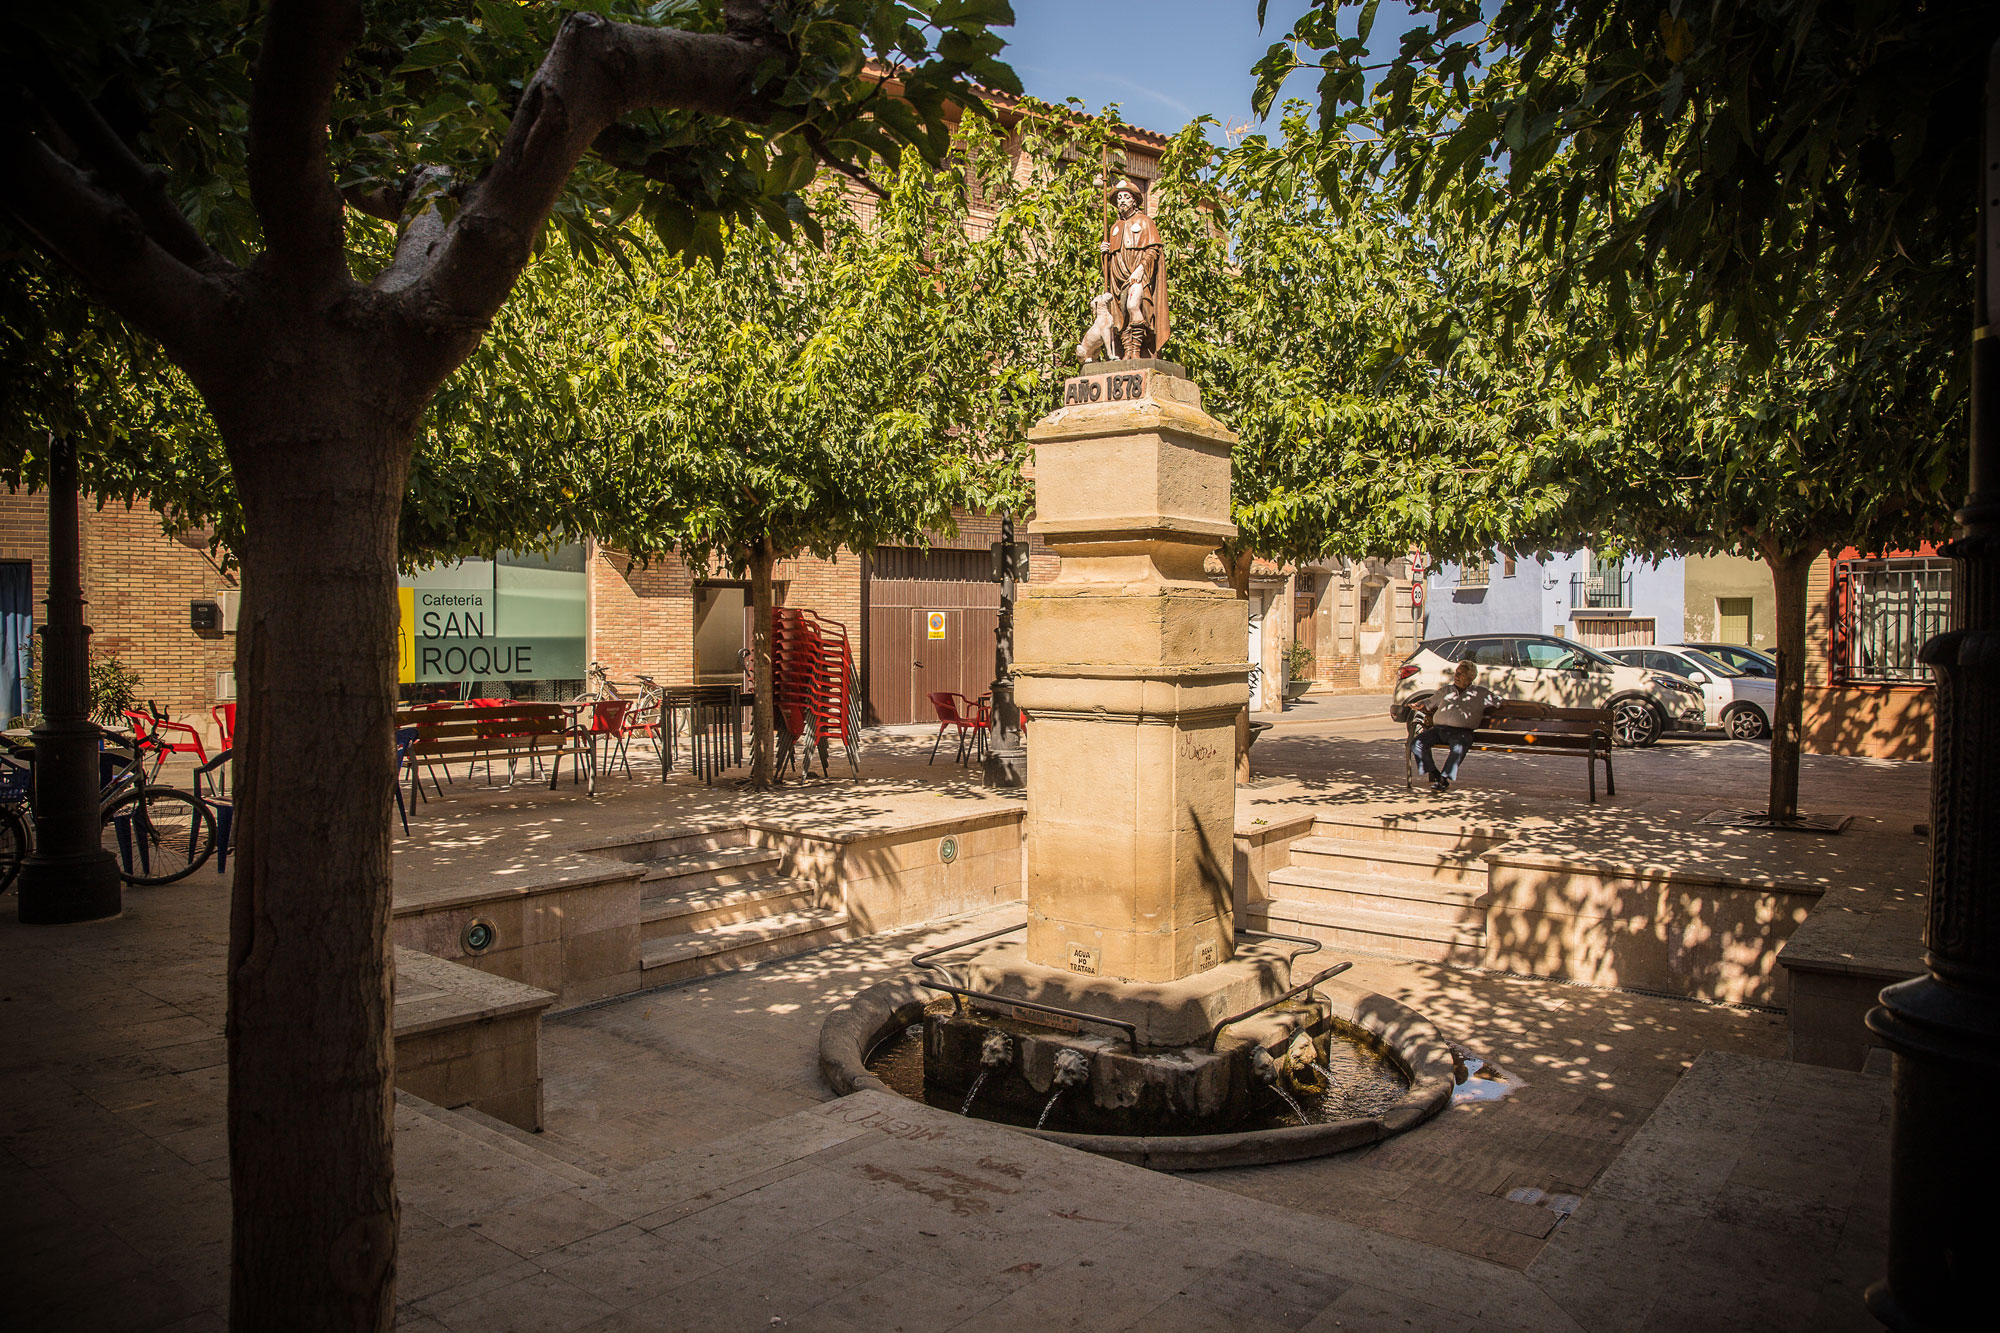 Plaza_de_San_Roque-web2